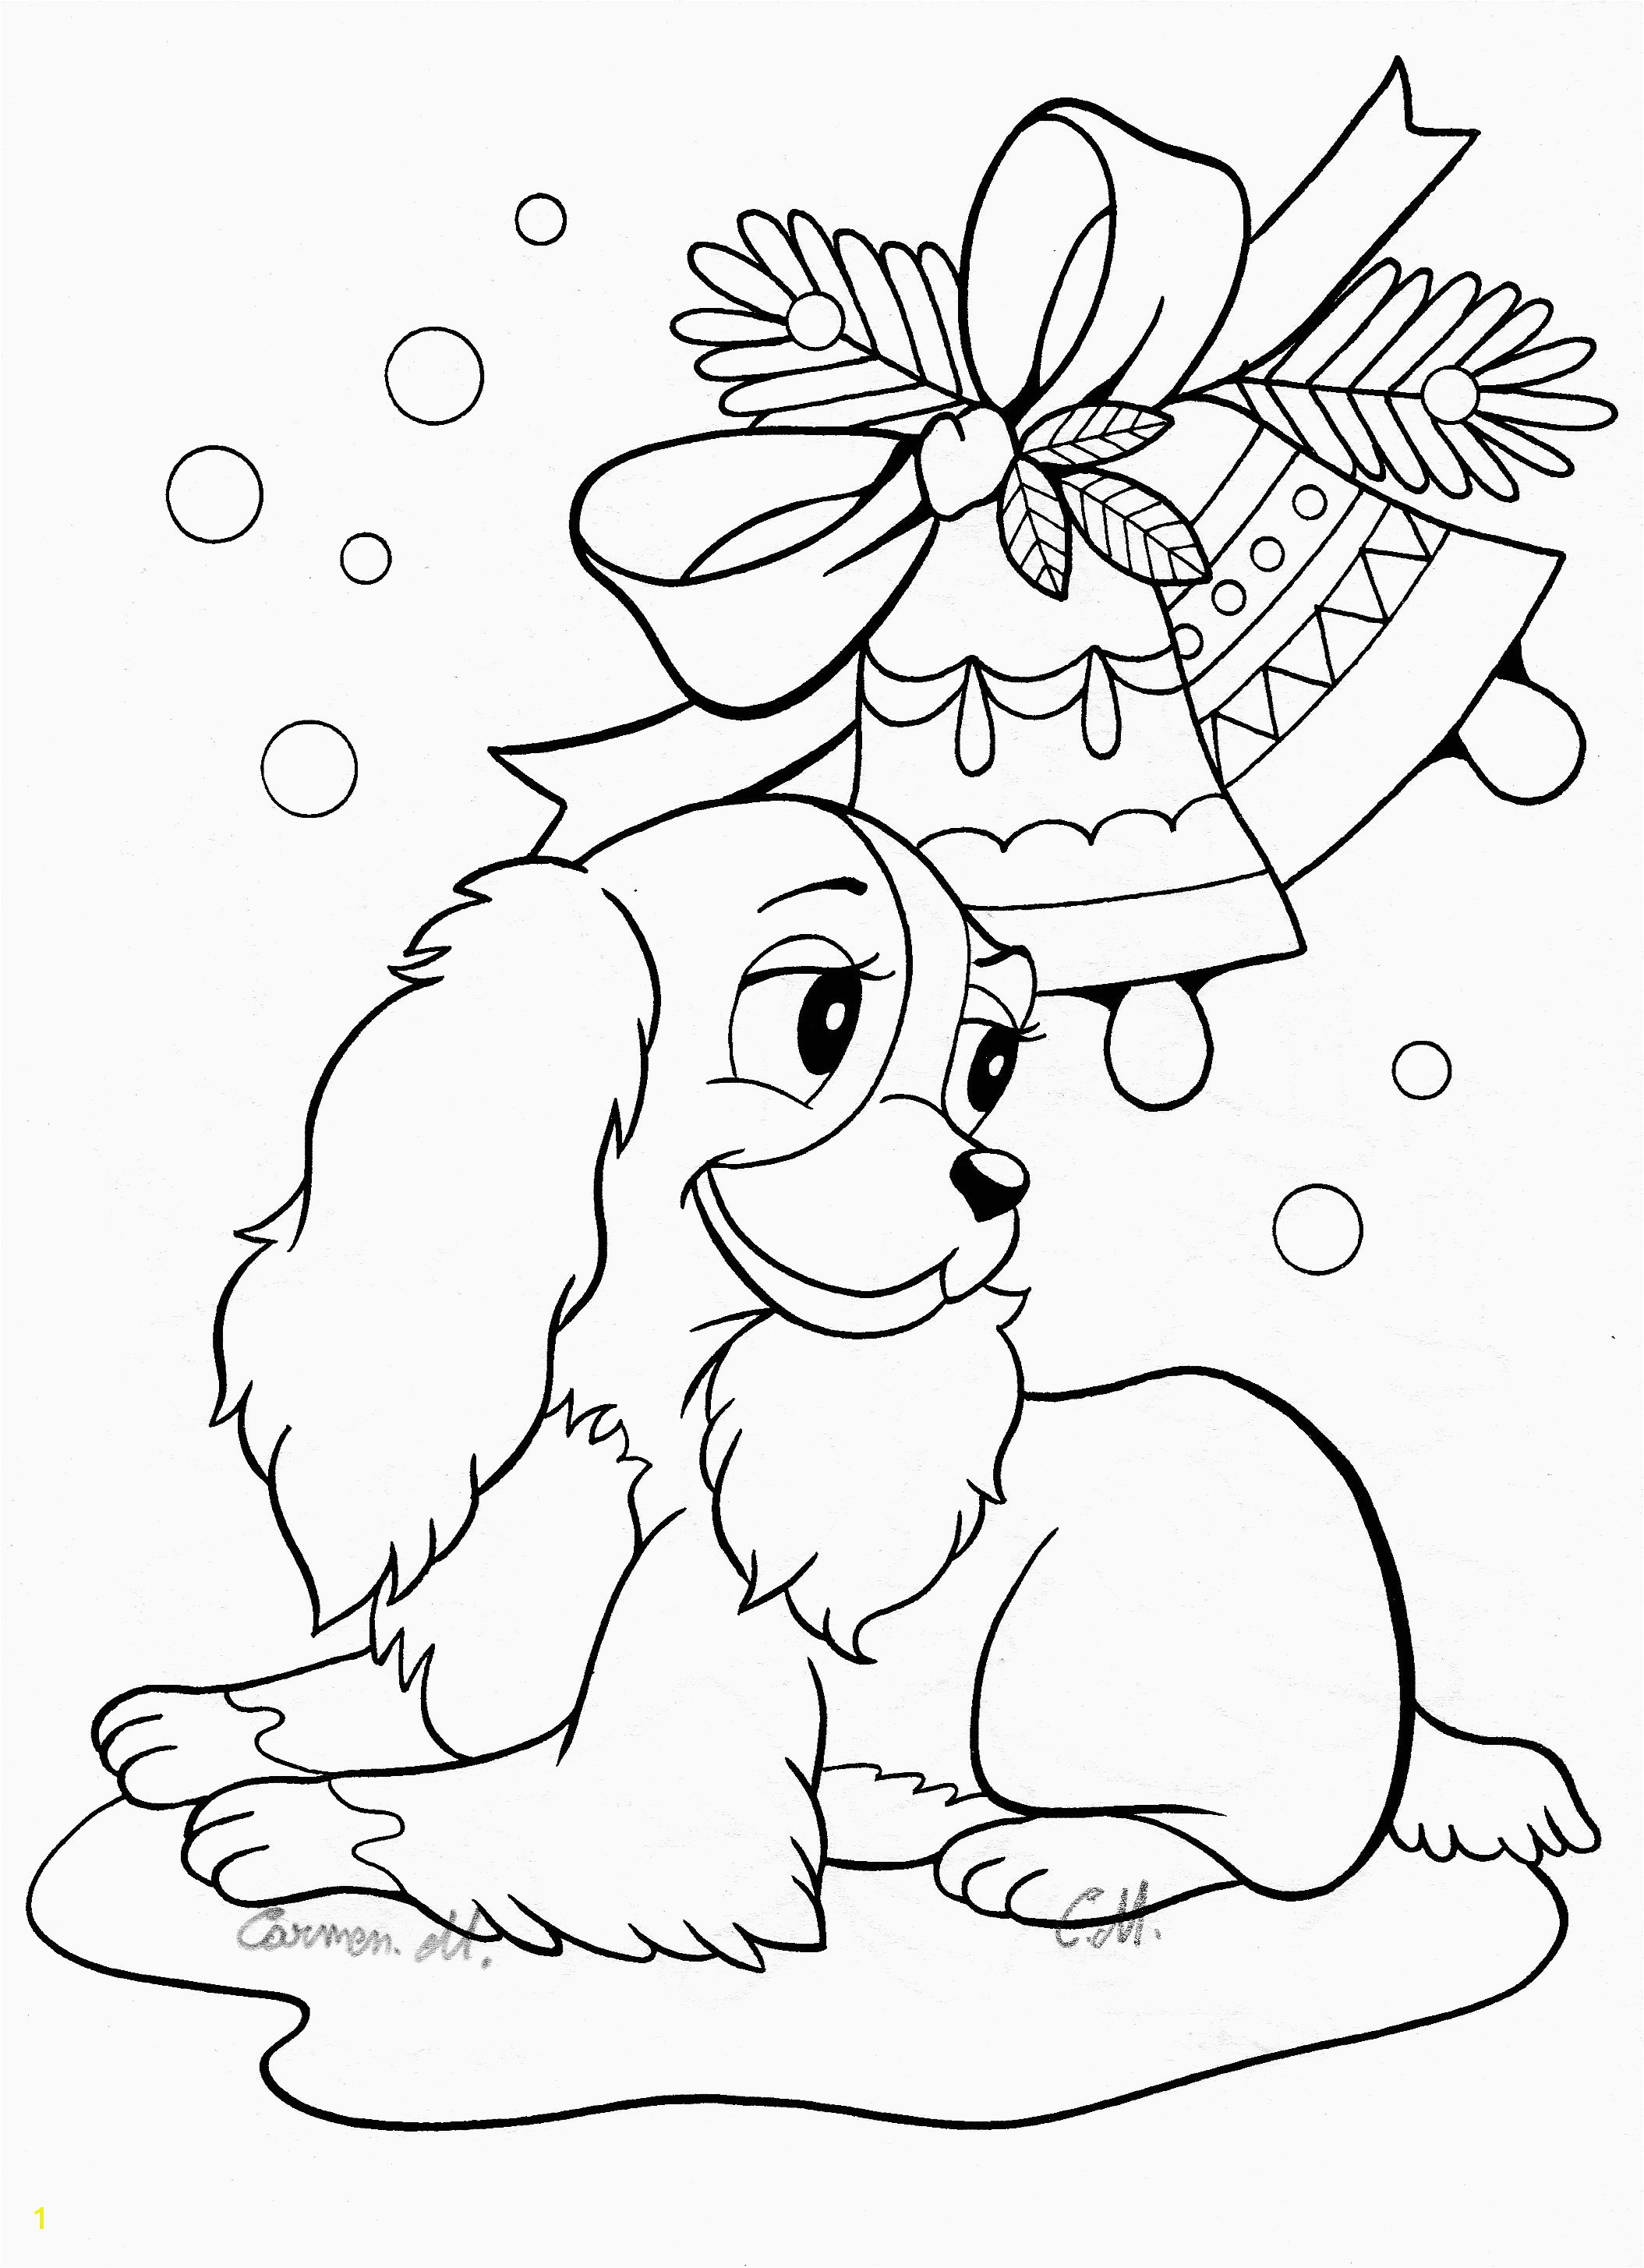 Downloadable Coloring Pages Free 19 Elegant Free Downloadable Coloring Pages